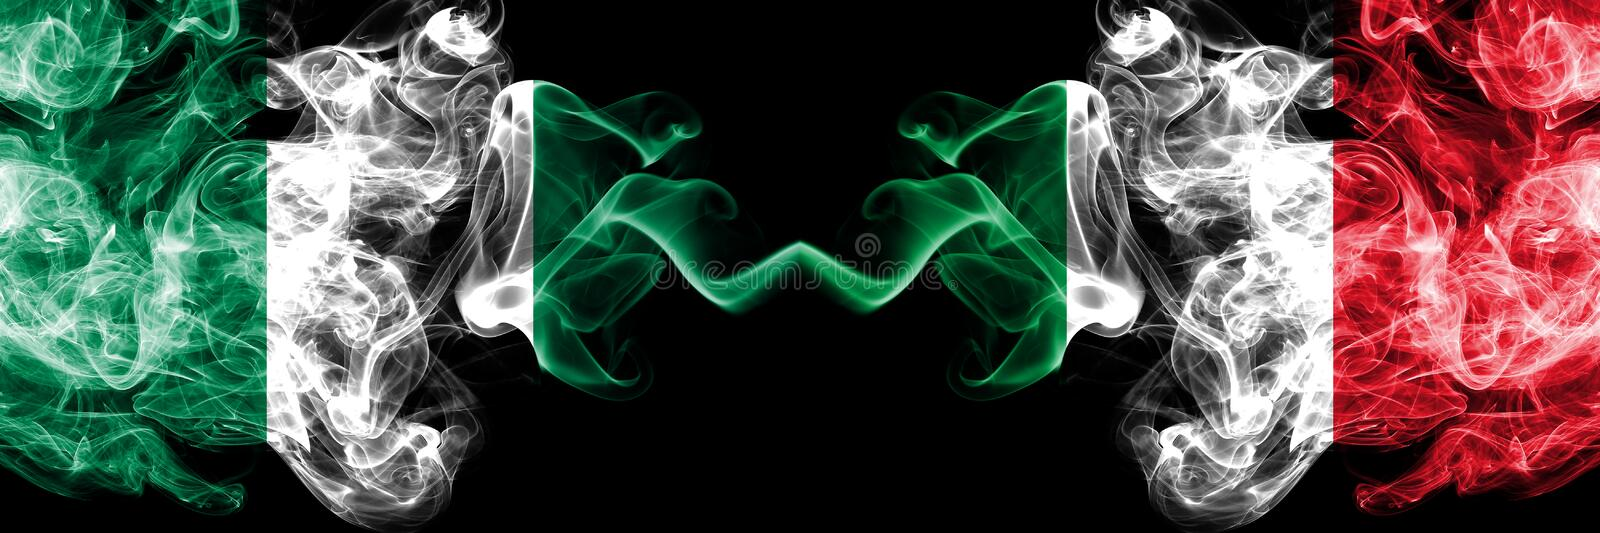 Nigeria vs Italy, Italian abstract smoky mystic flags placed side by side. Thick colored silky smoke flags of Nigerian and Italy, vector illustration